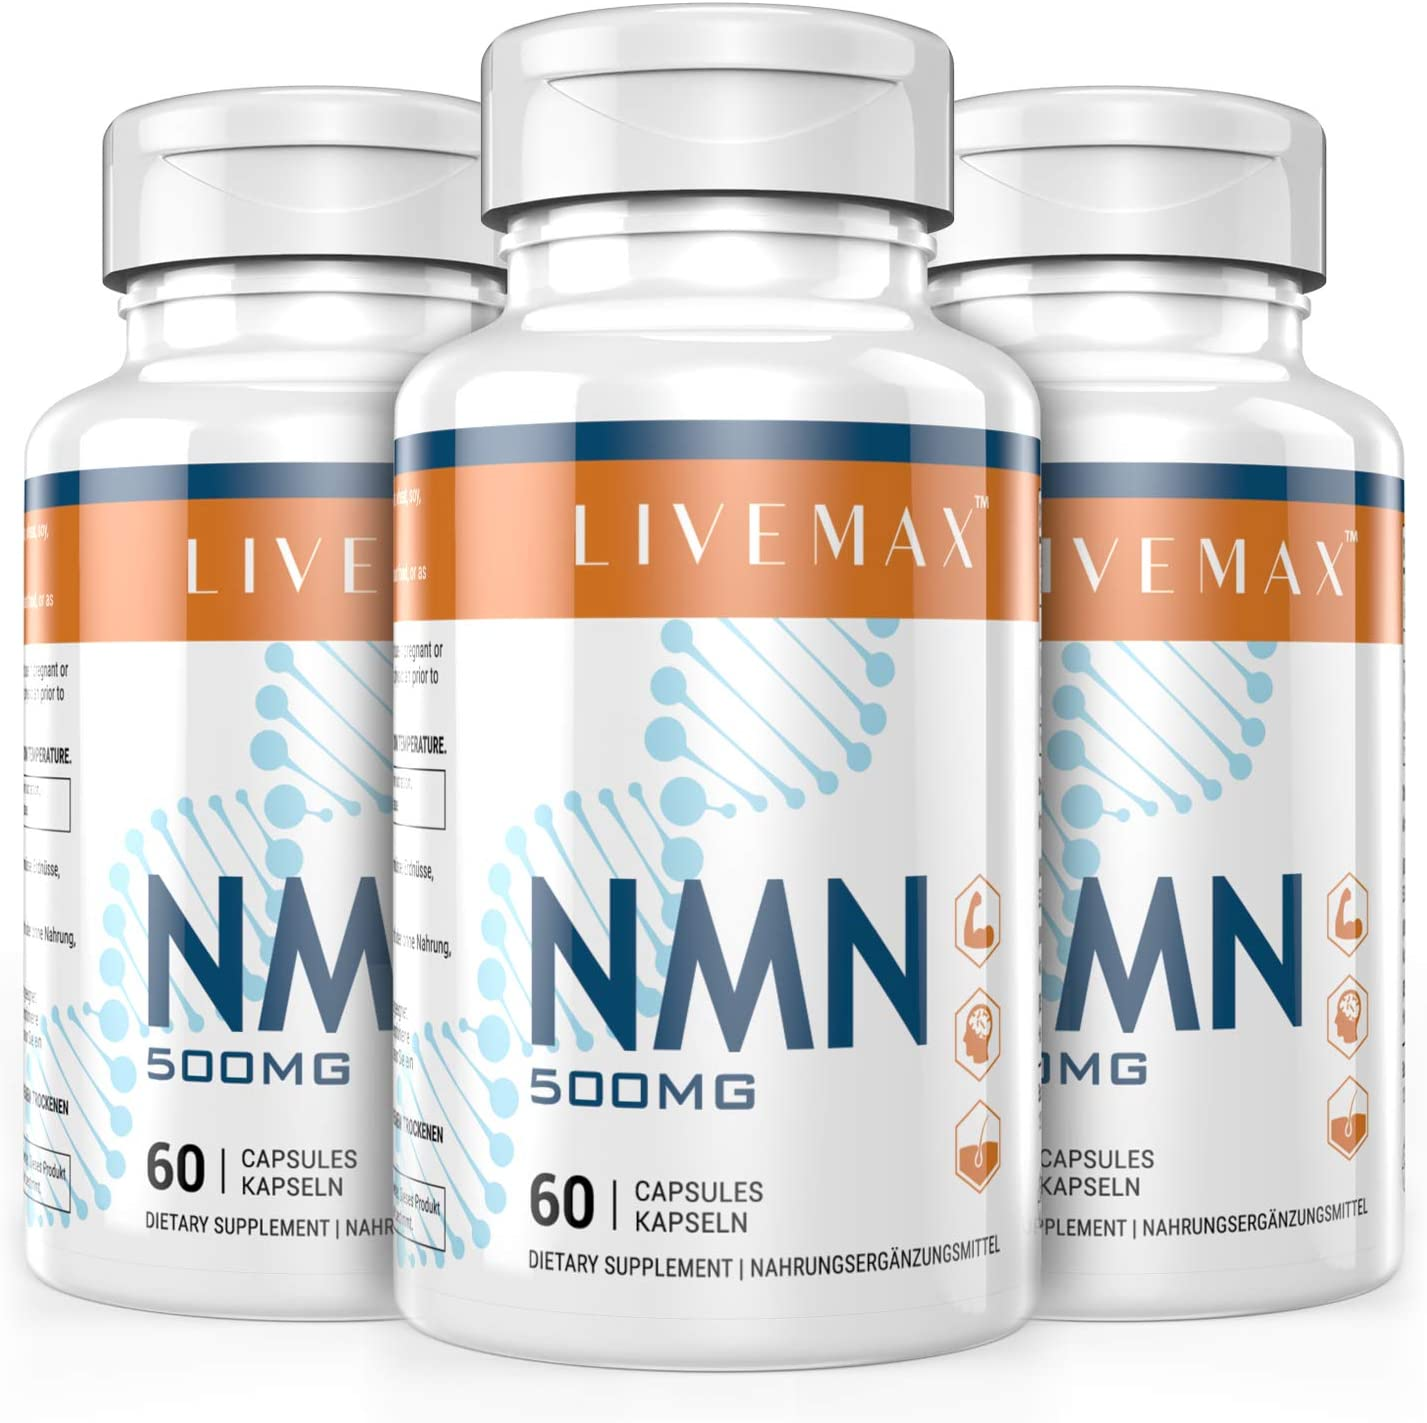 NMN Supplement 500mg (3 Packs)- Enhance Concentration, Boost Energy, Improve Memory & Clarity for Men & Women - Your Best NAD Booster